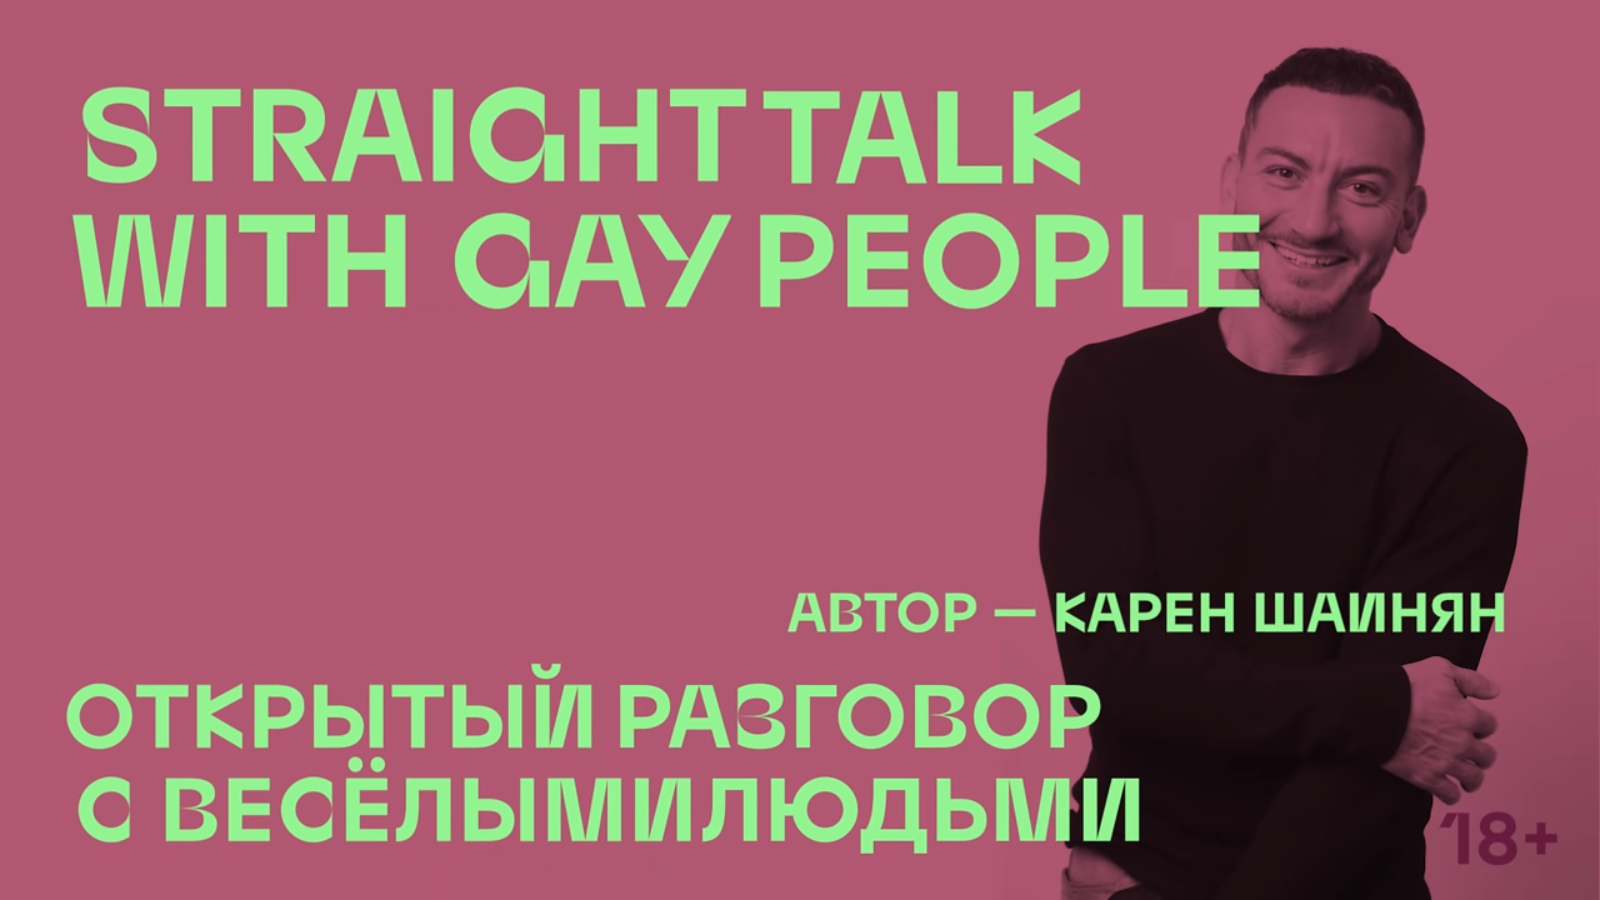 Show Straight Talk With Gay People